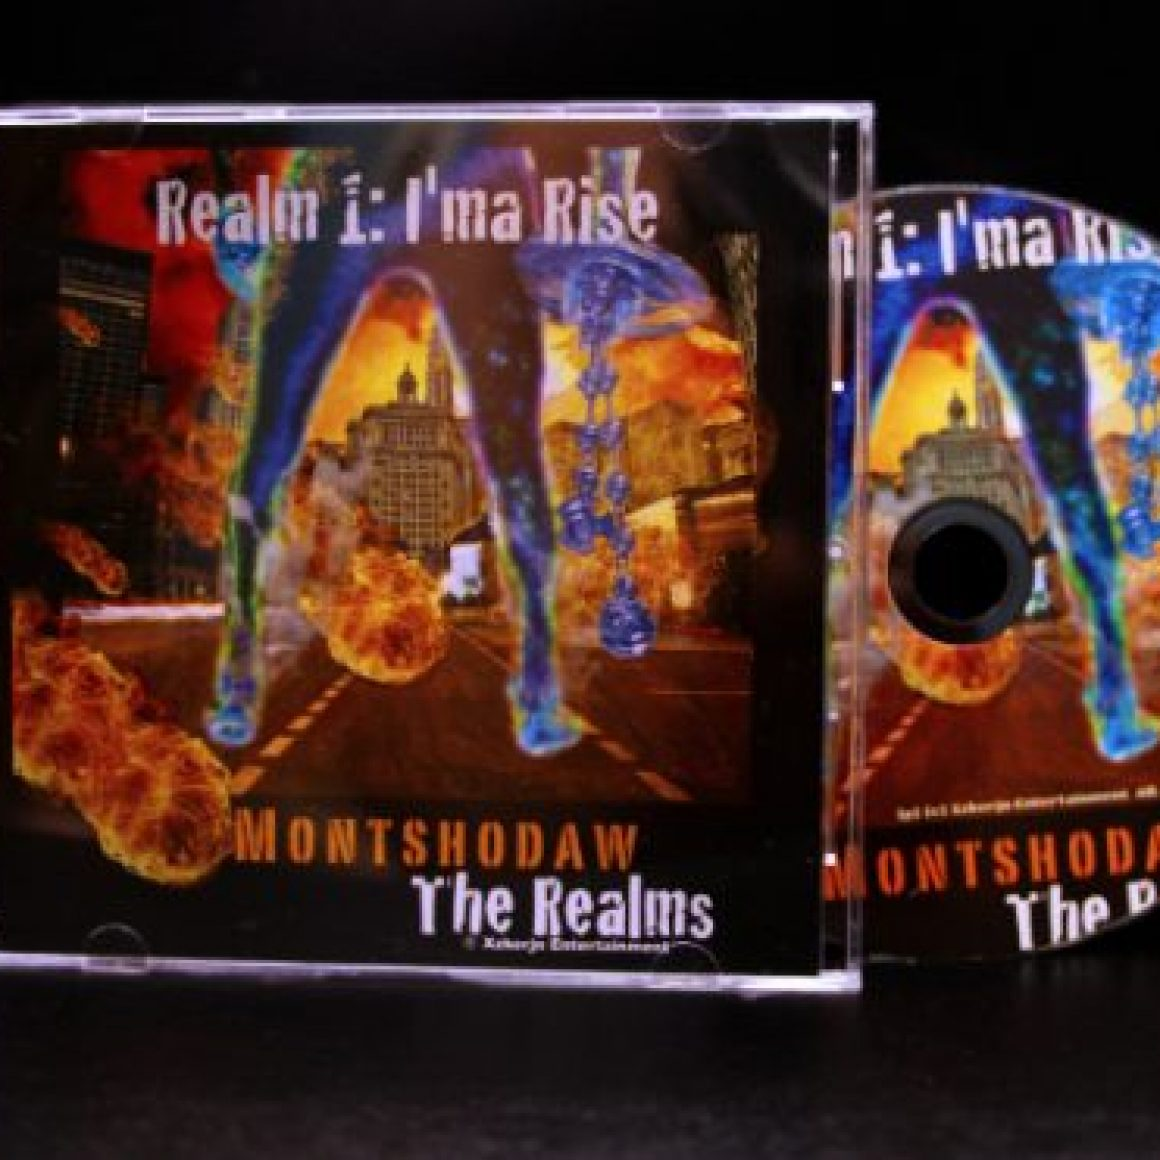 Montshodaw / The Realms... Realm 1: I'ma Rise (CD Album)